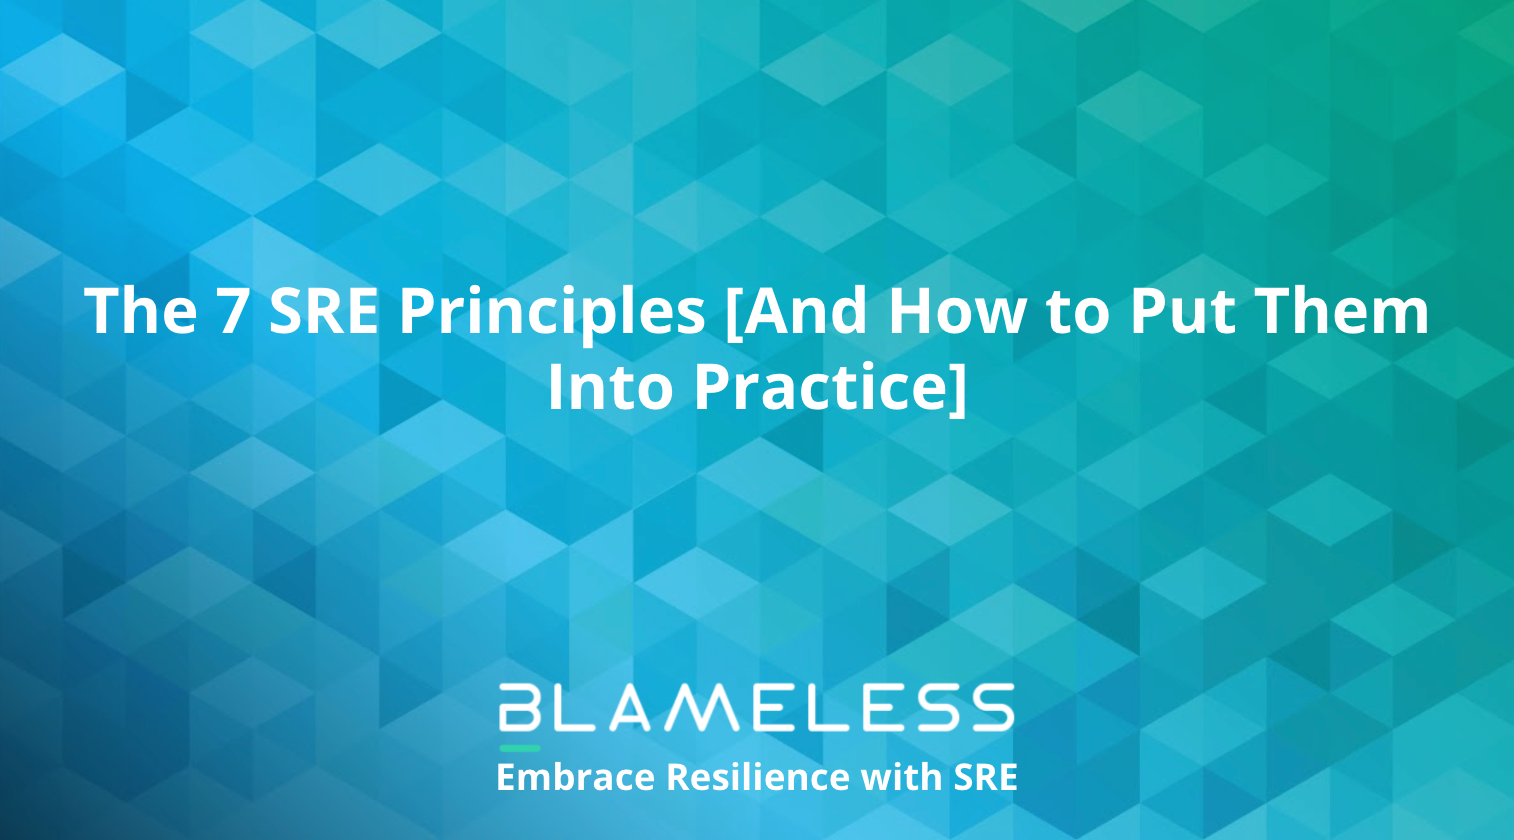 The 7 SRE Principles [And How to Put Them Into Practice]